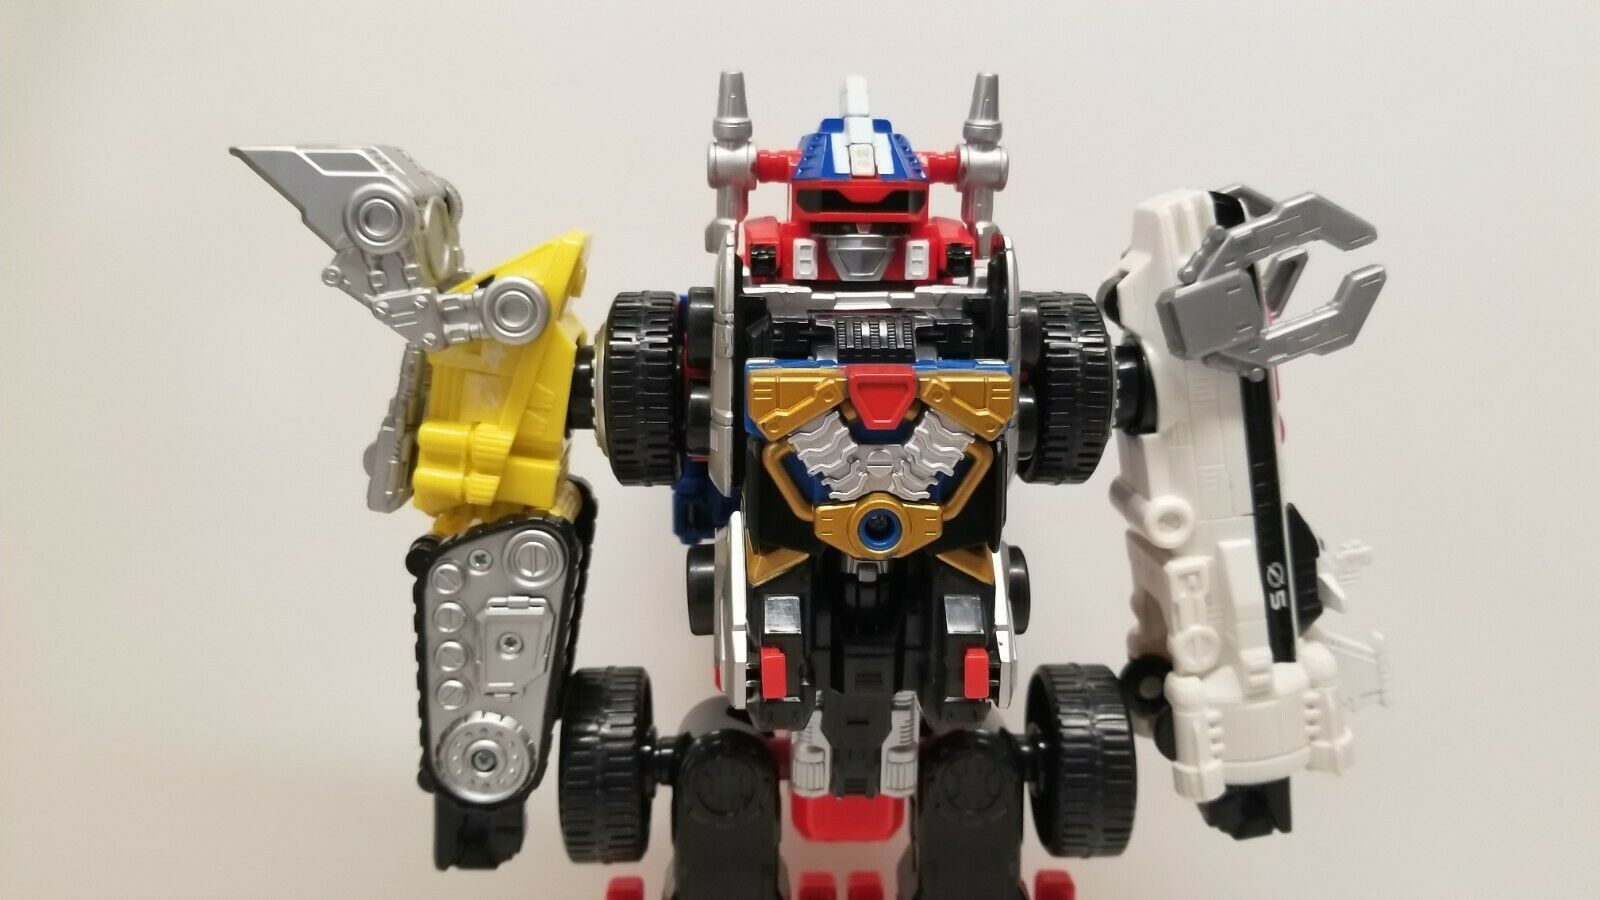 Power Rangers OPERATION OVERDRIVE Deluxe DX DX DX DRIVEMAX Megazord morpher complete 04044c